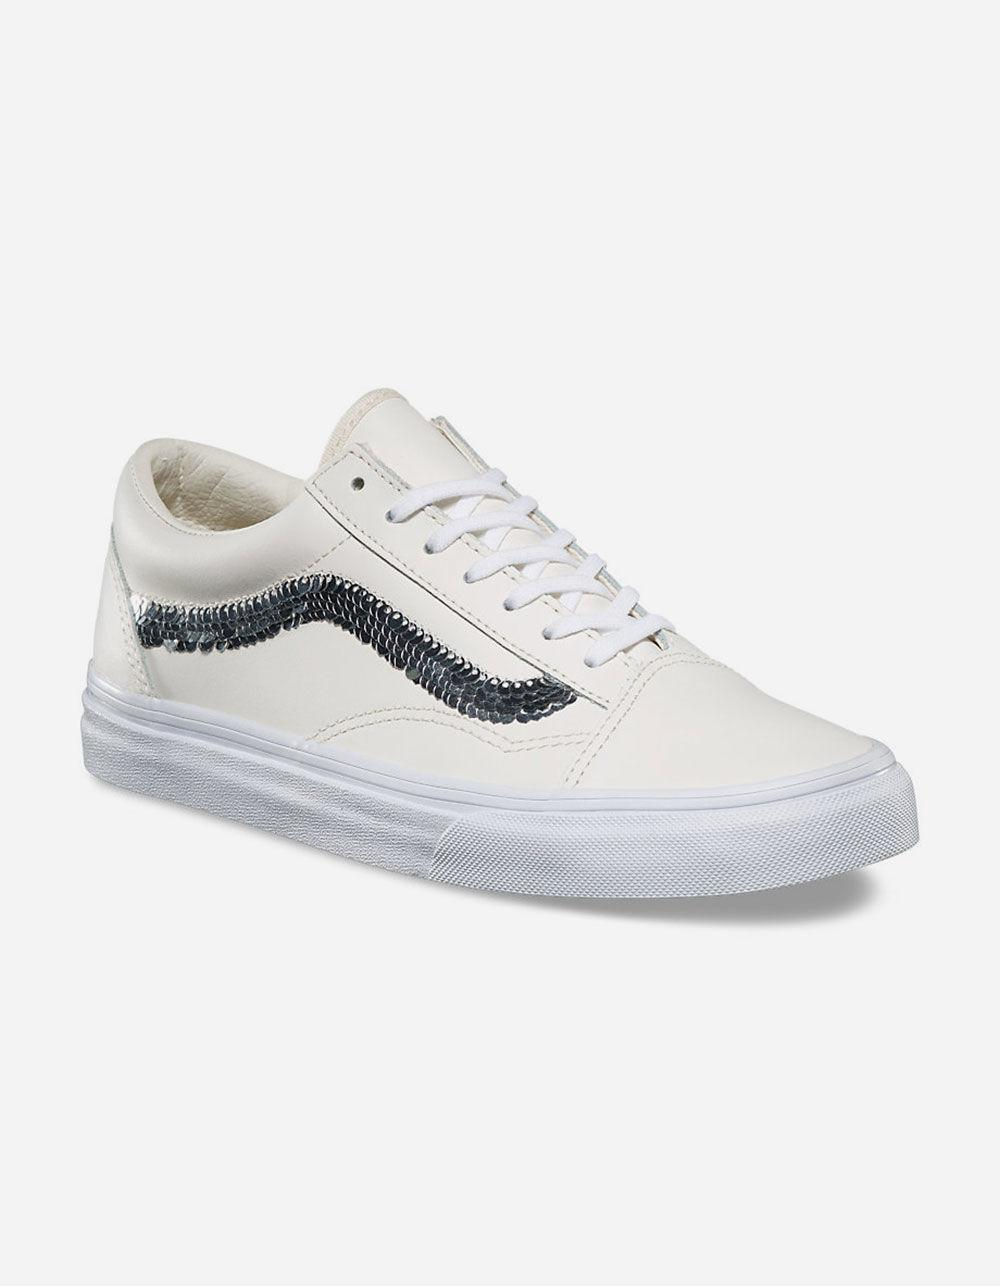 cebfb26fea1 Vans White Shiny Sequins Old Skool Womens Shoes